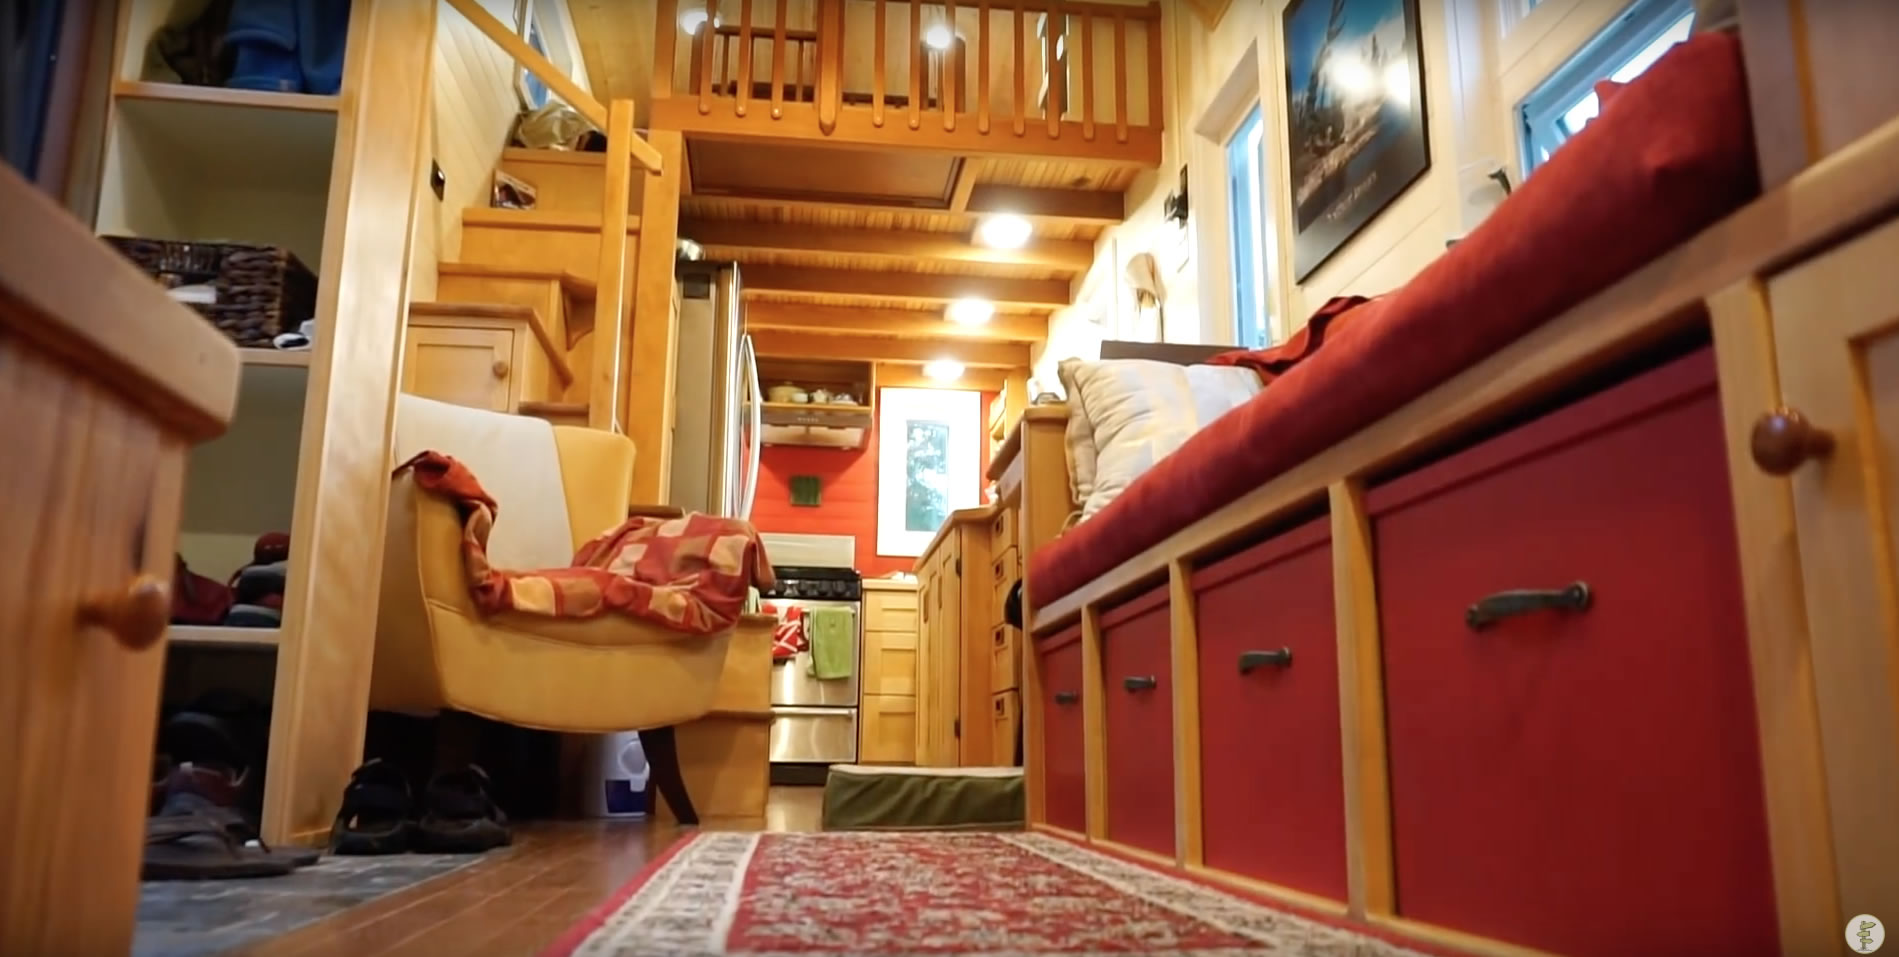 Interior - Challenges & Benefits of Tiny House Living - Couple Shares Experience